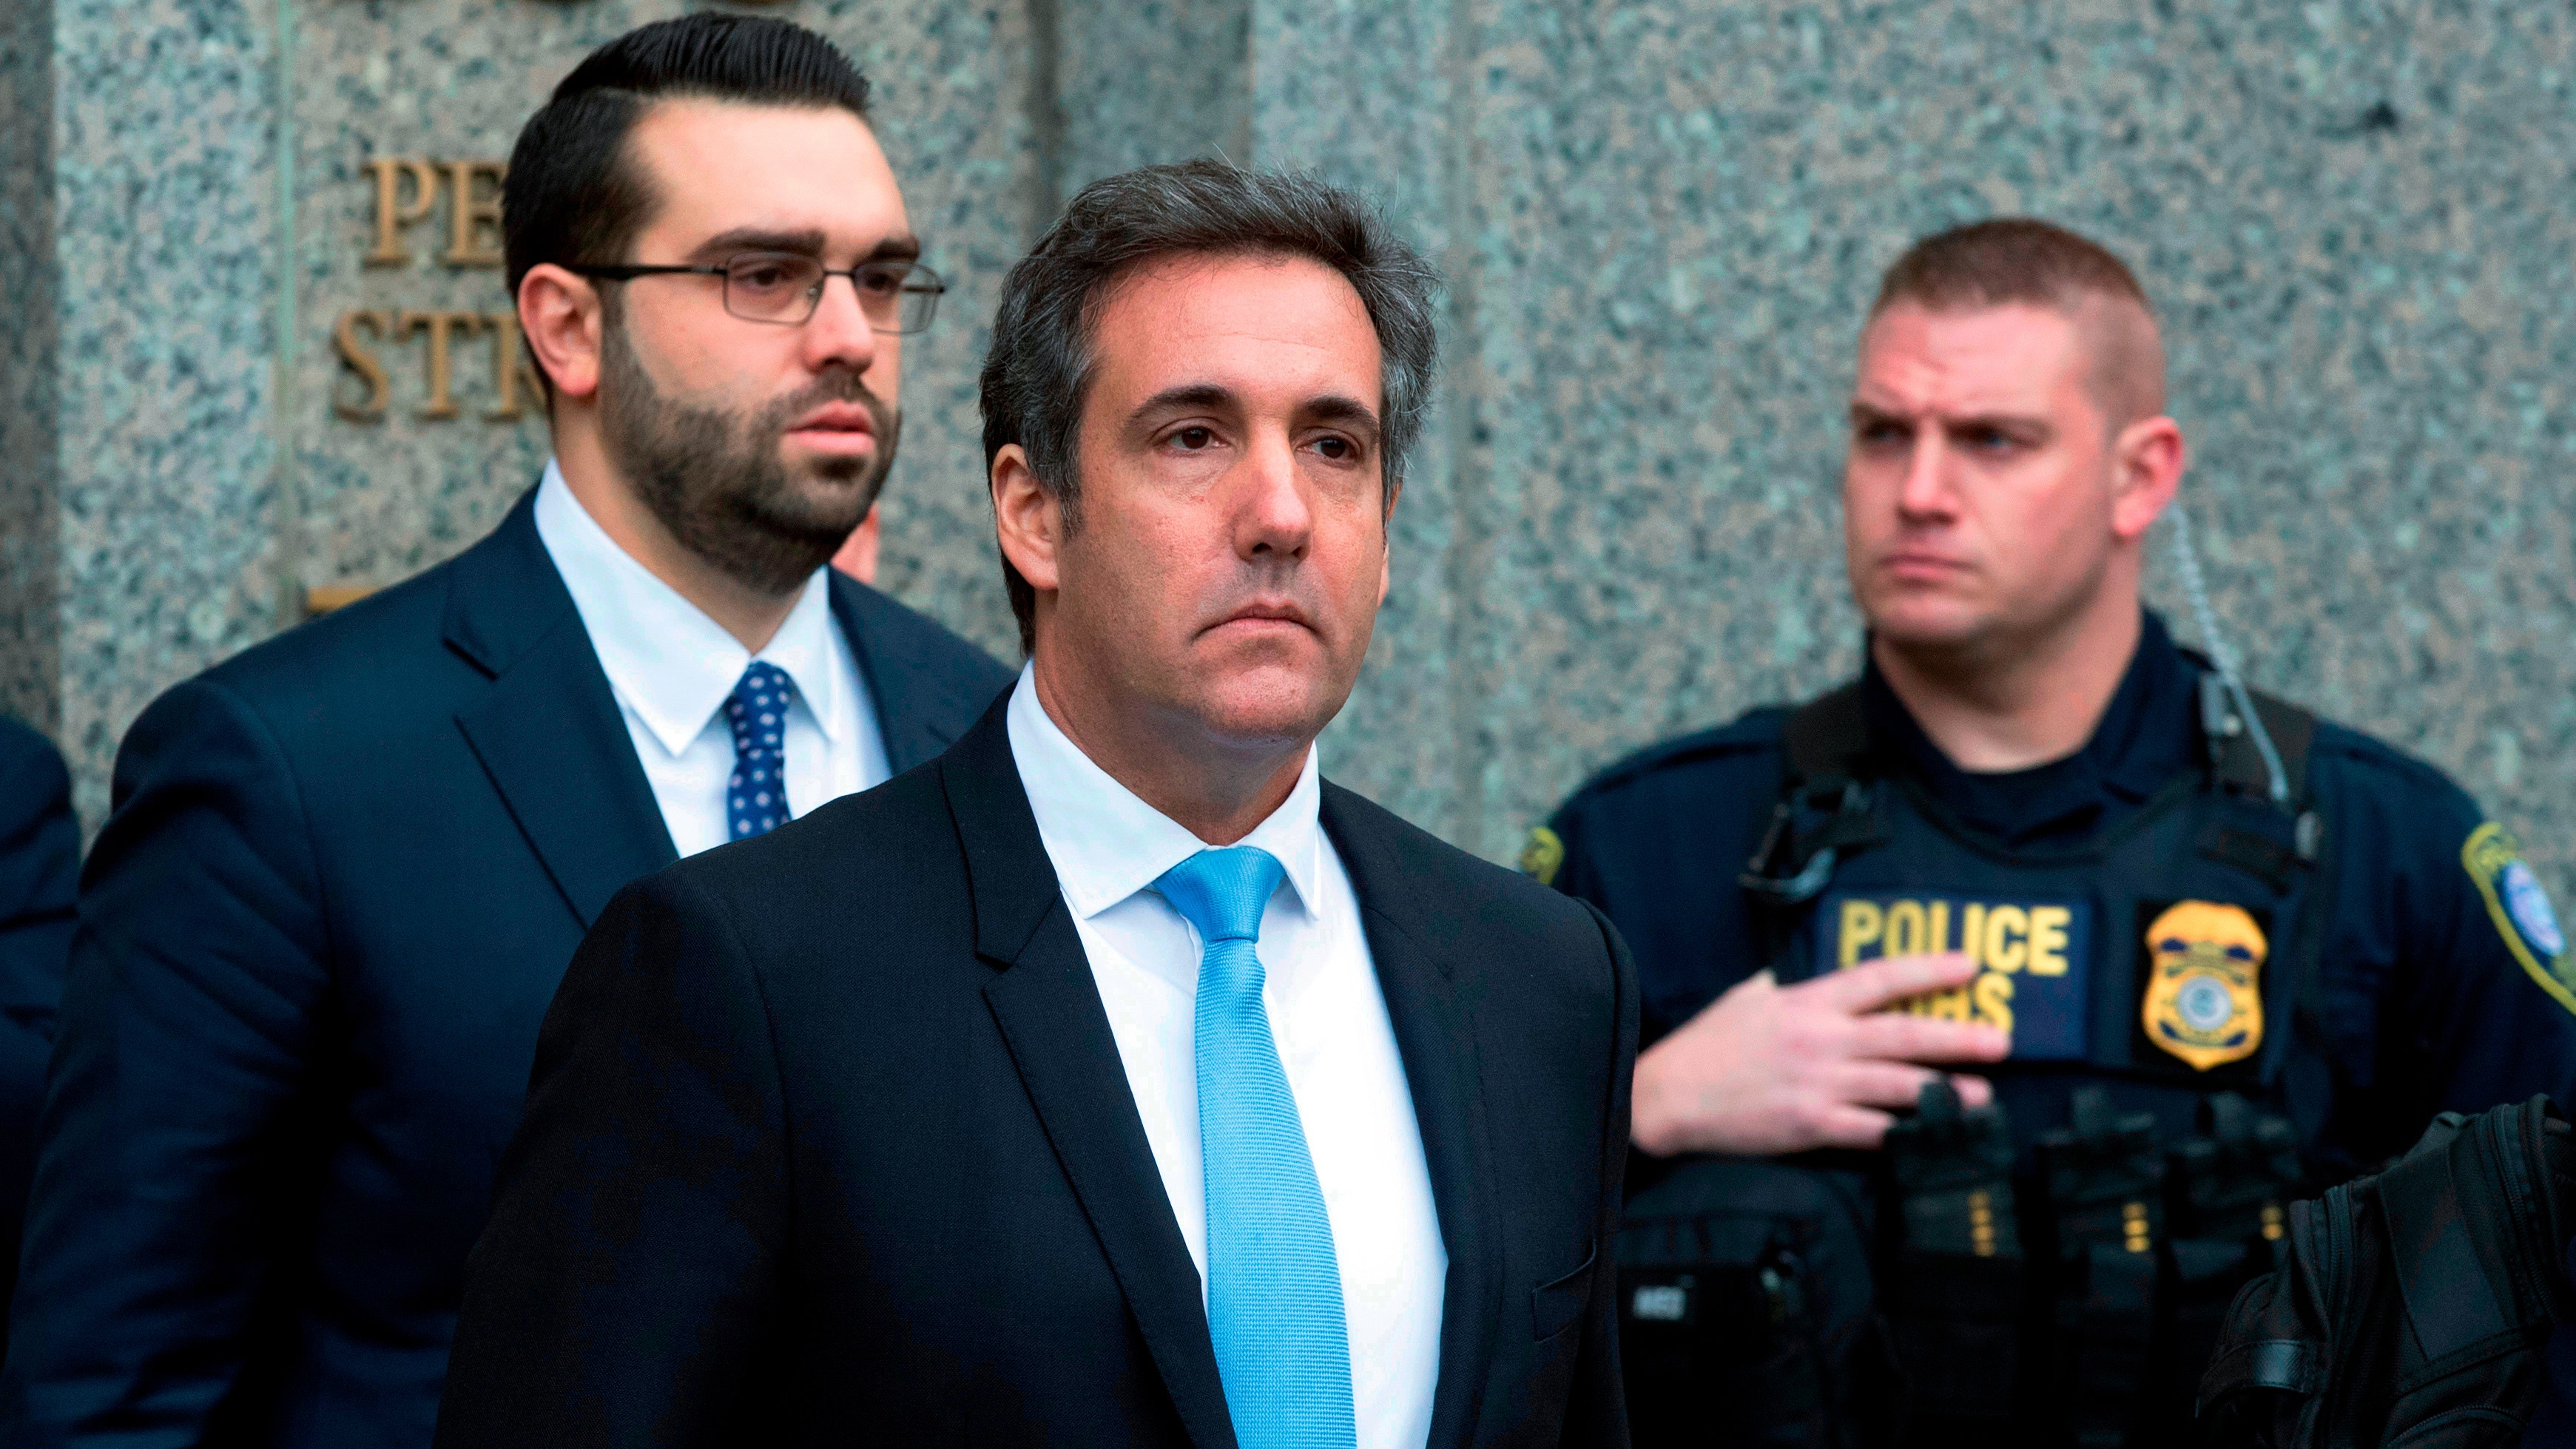 Trump lawyer to plead the 5th in Stormy Daniels case